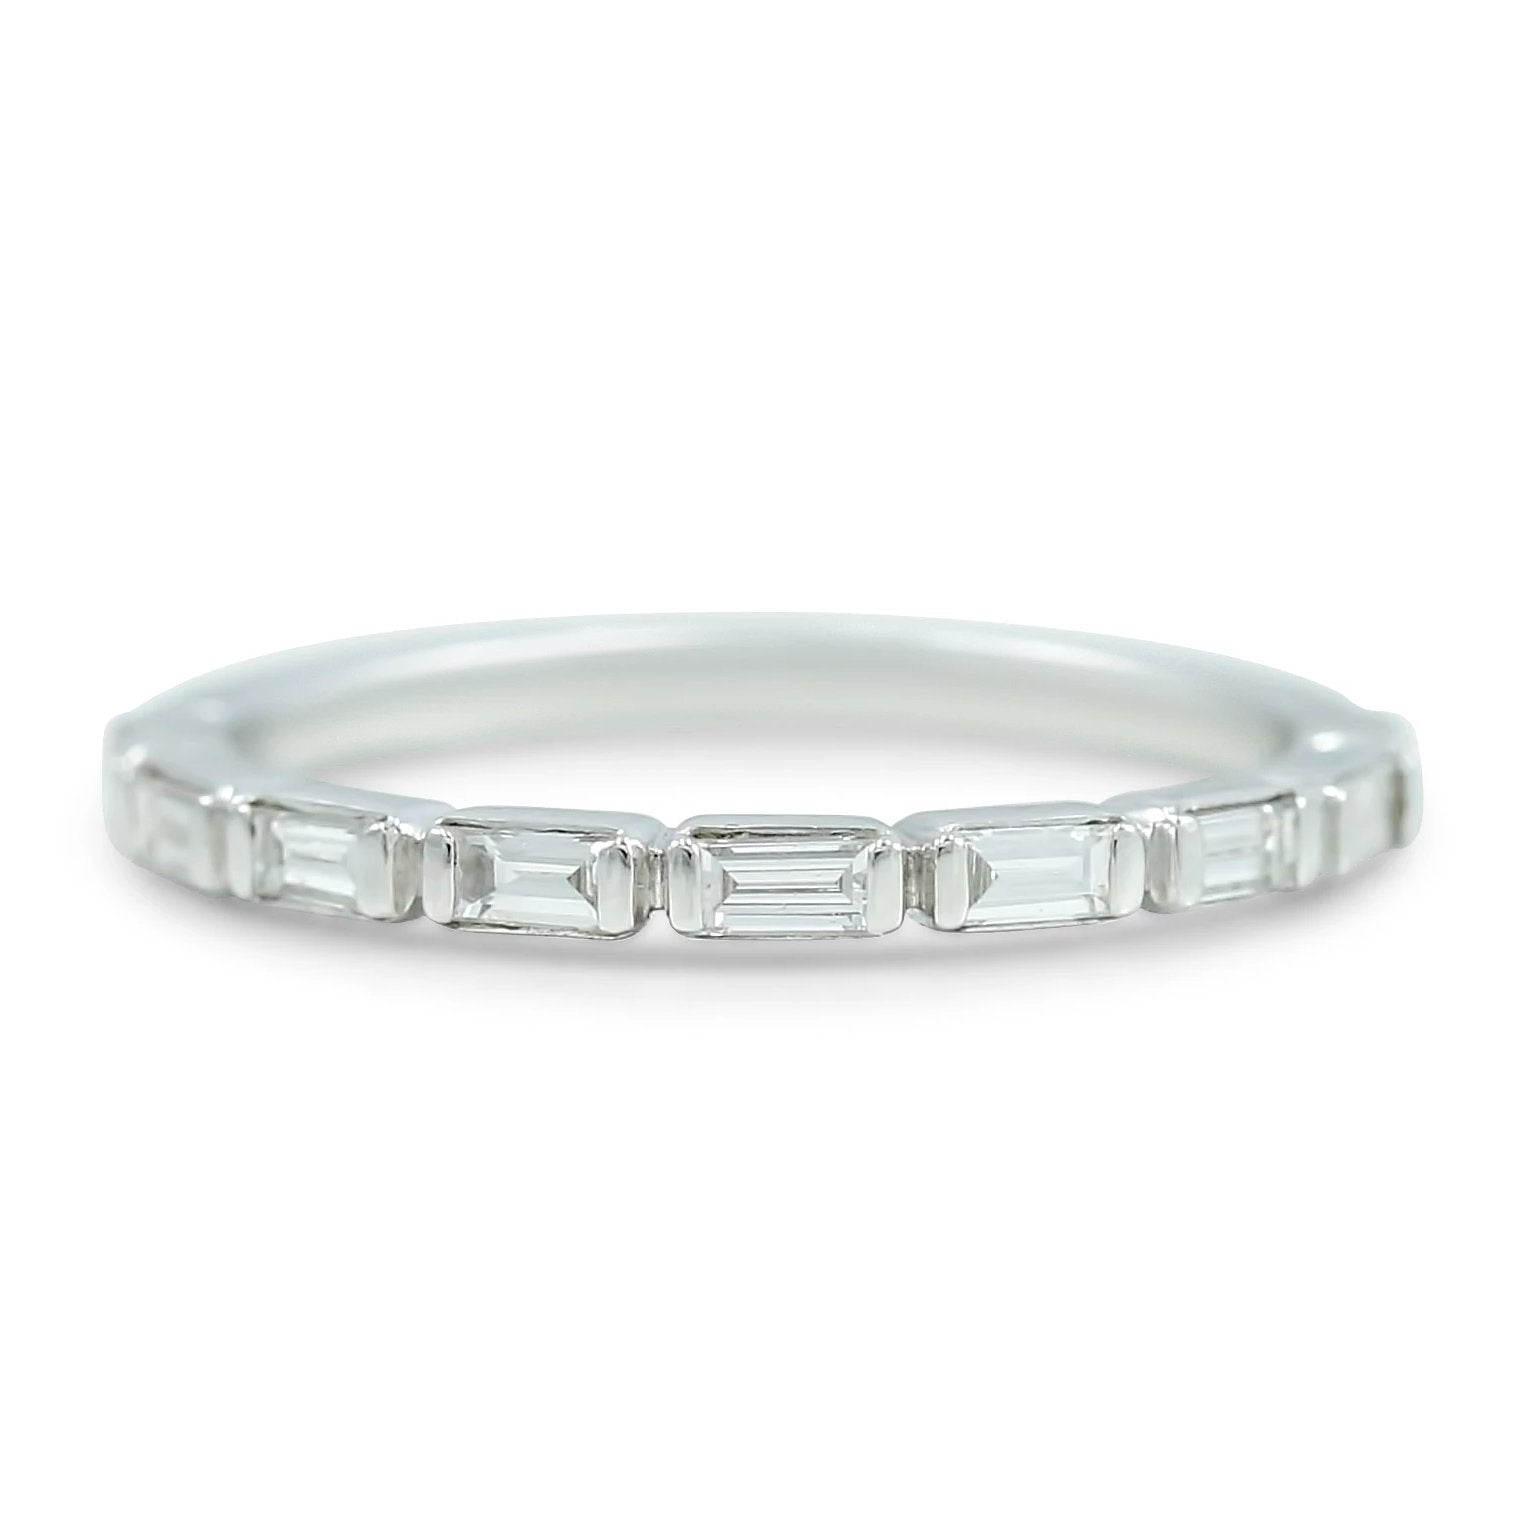 1/4tcw baguette diamond wedding band 14k white gold